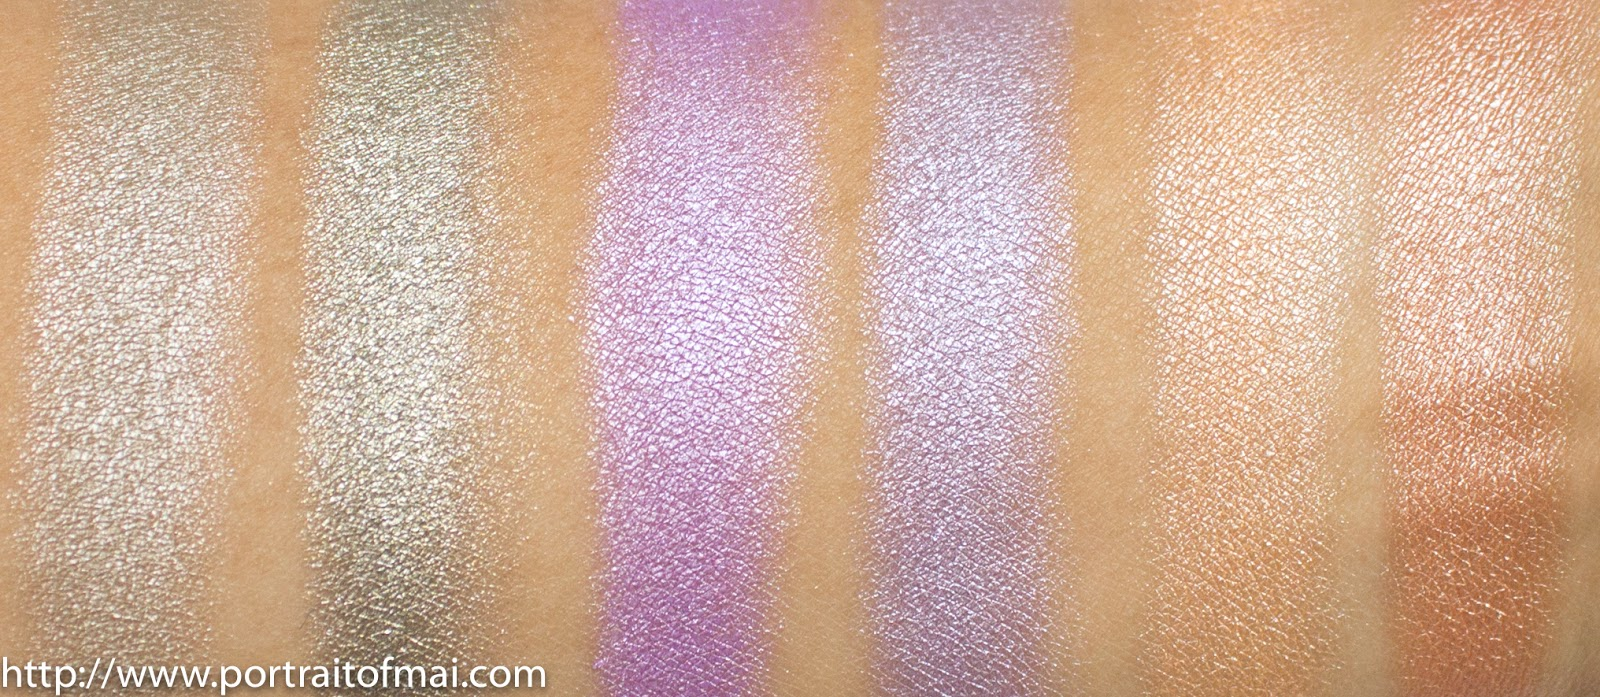 BH Foil Eyes vs. Makeup Geek Foiled Eyeshadows